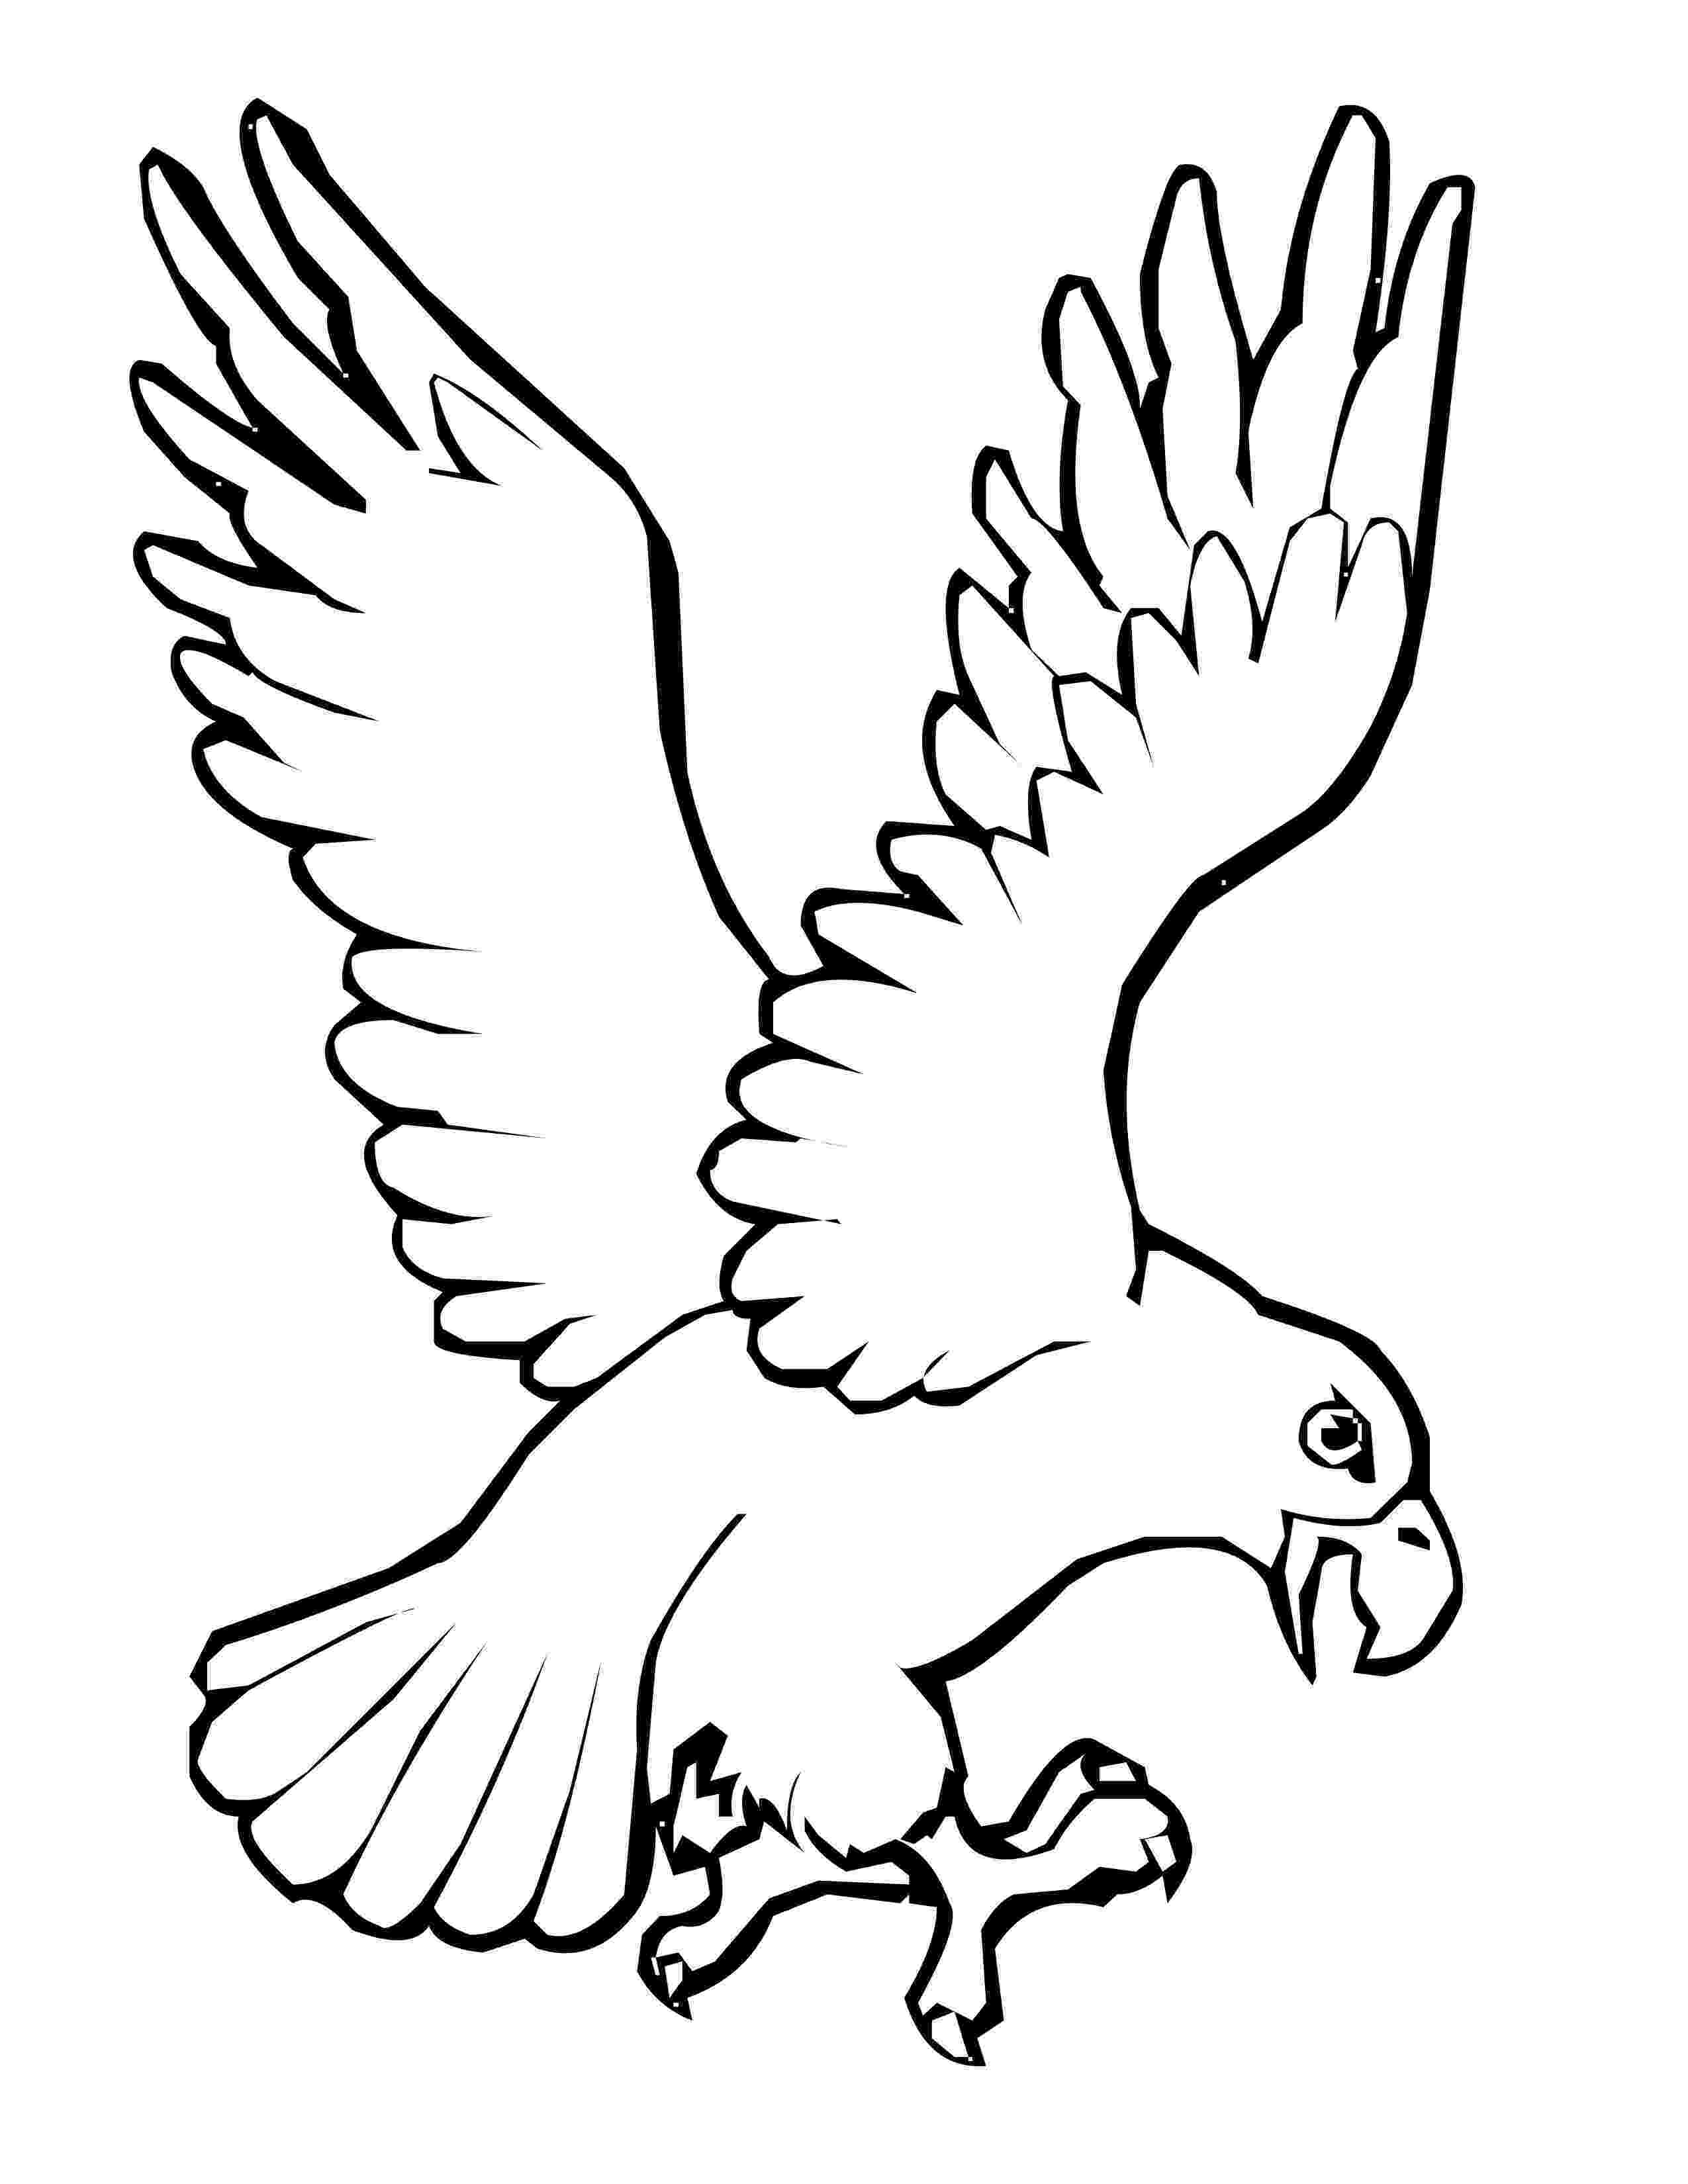 bird coloring images cute tweety coloring page bird coloring pages cartoon images bird coloring